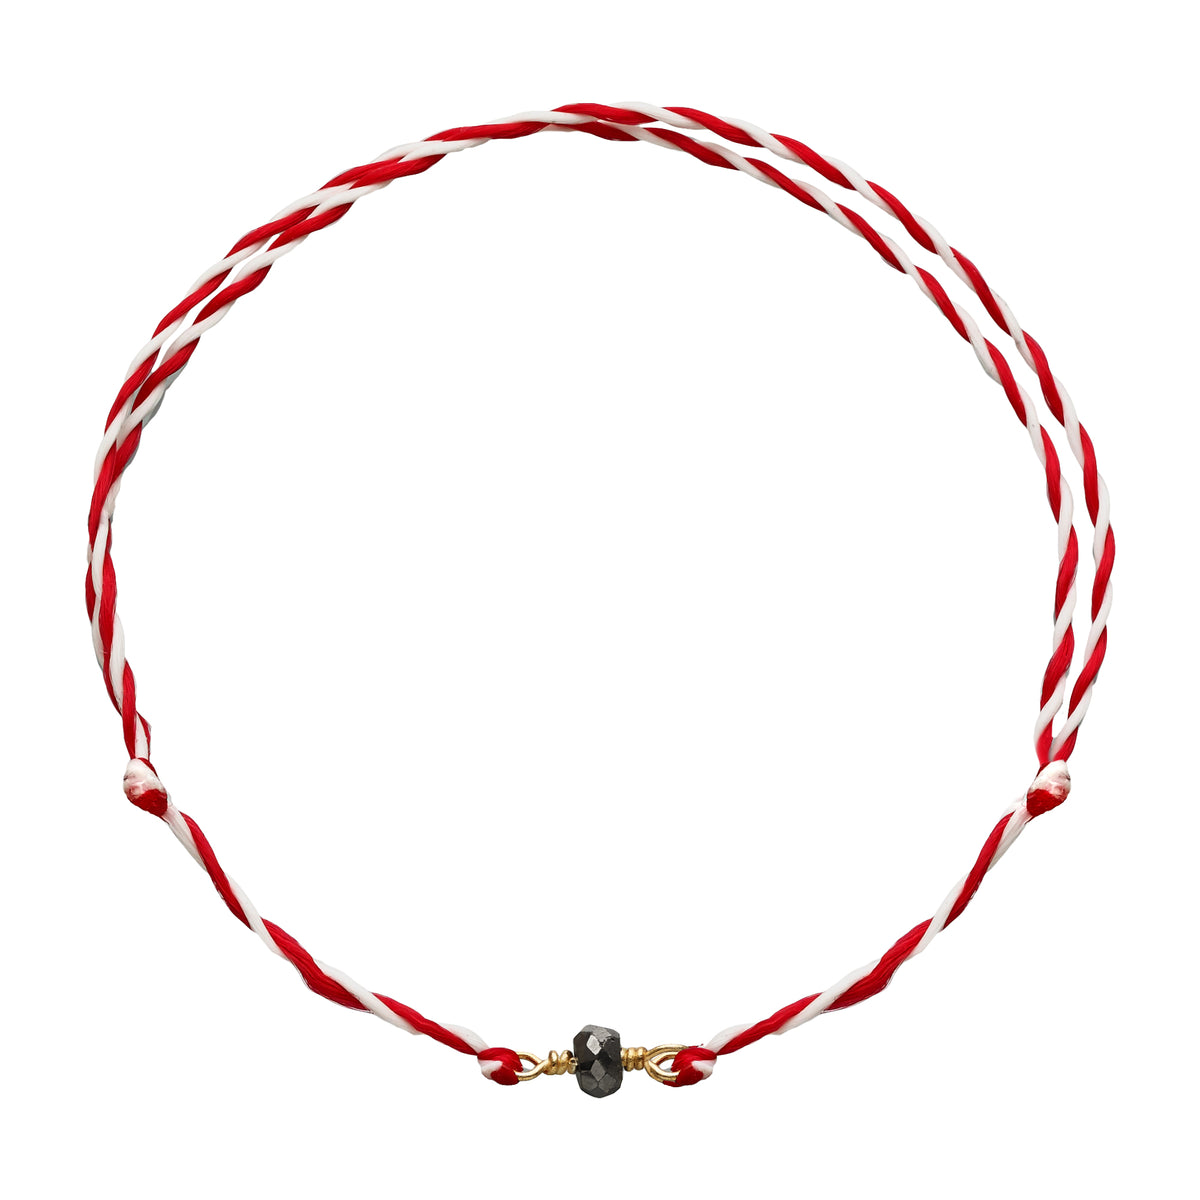 March Bracelet | Pyrite | Red & White Thread - Spirito Rosa | Βραβευμένα Κοσμήματα σε Απίστευτες Τιμές